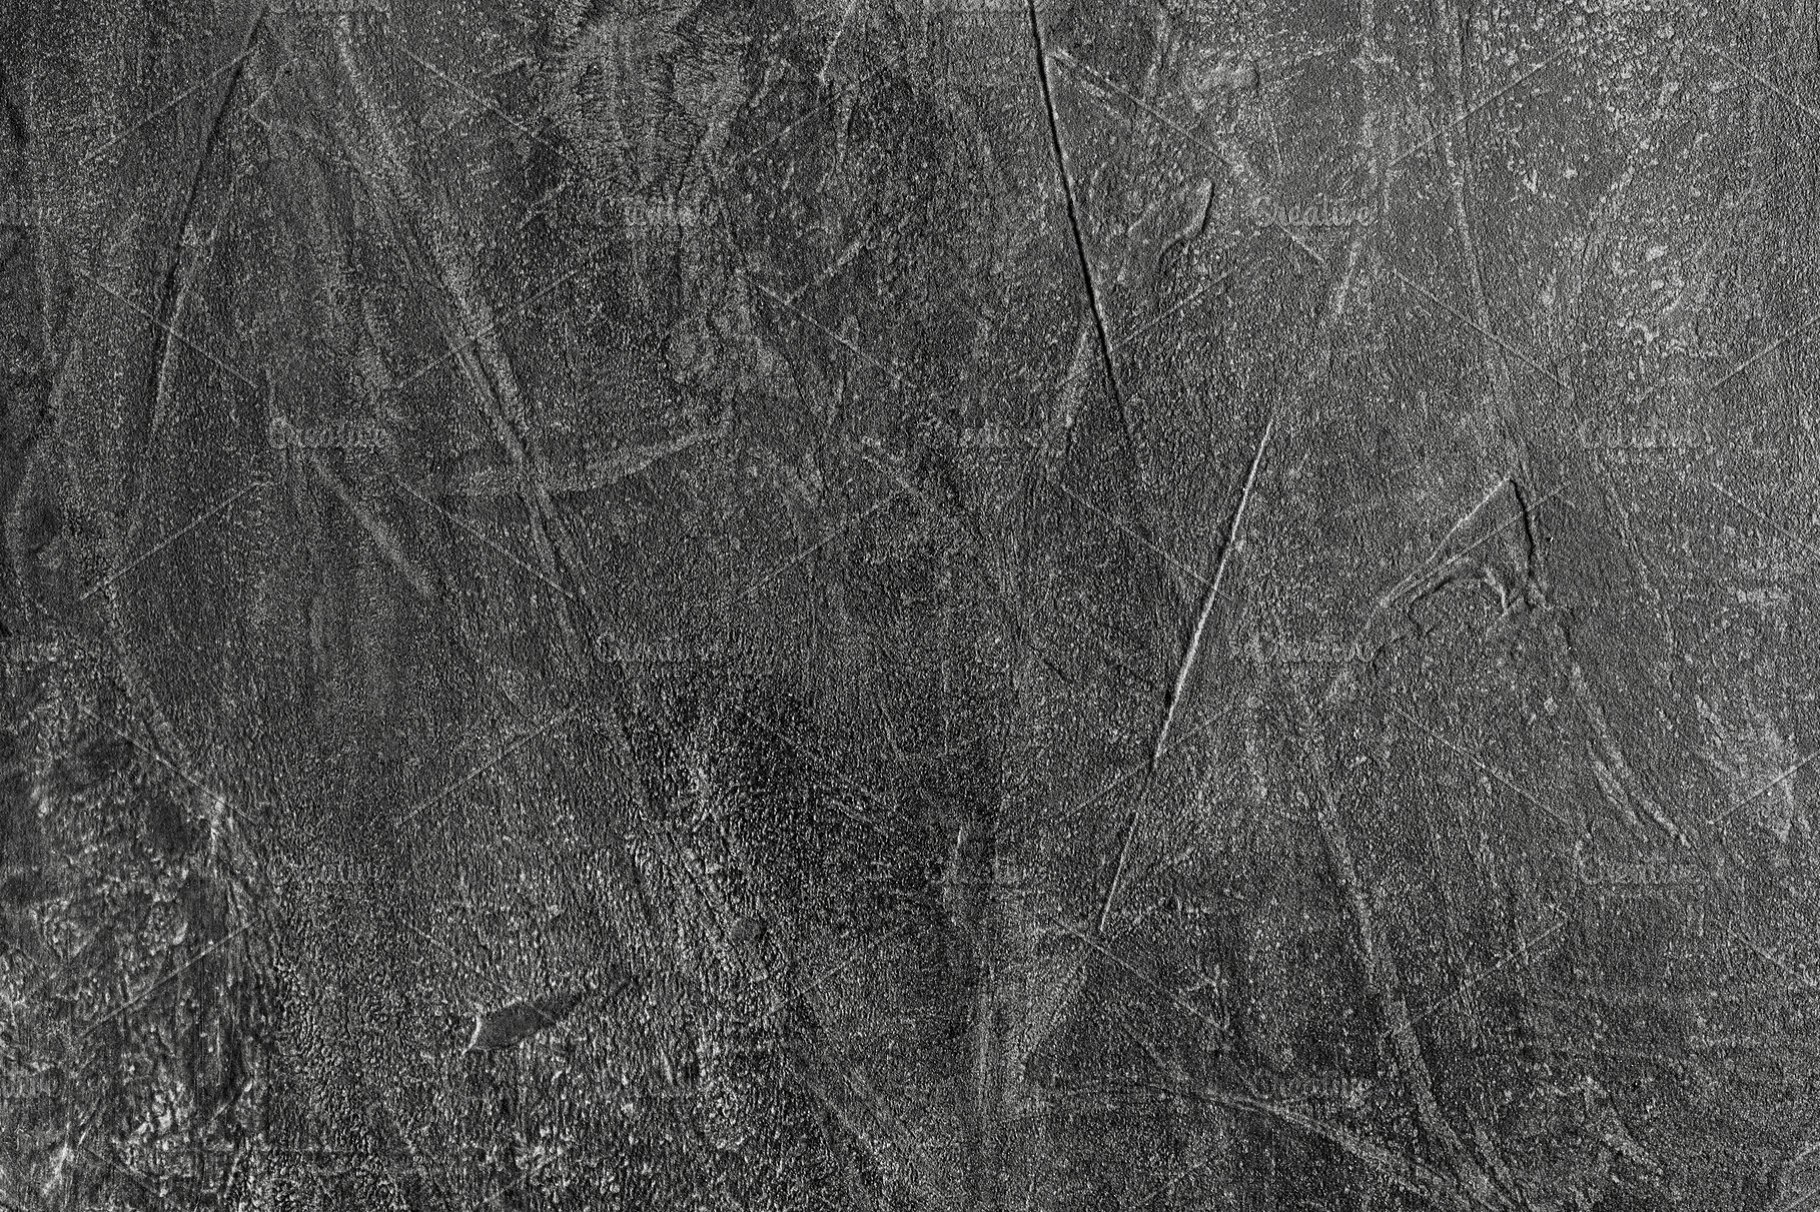 Grey grunge background | High-Quality Abstract Stock ...